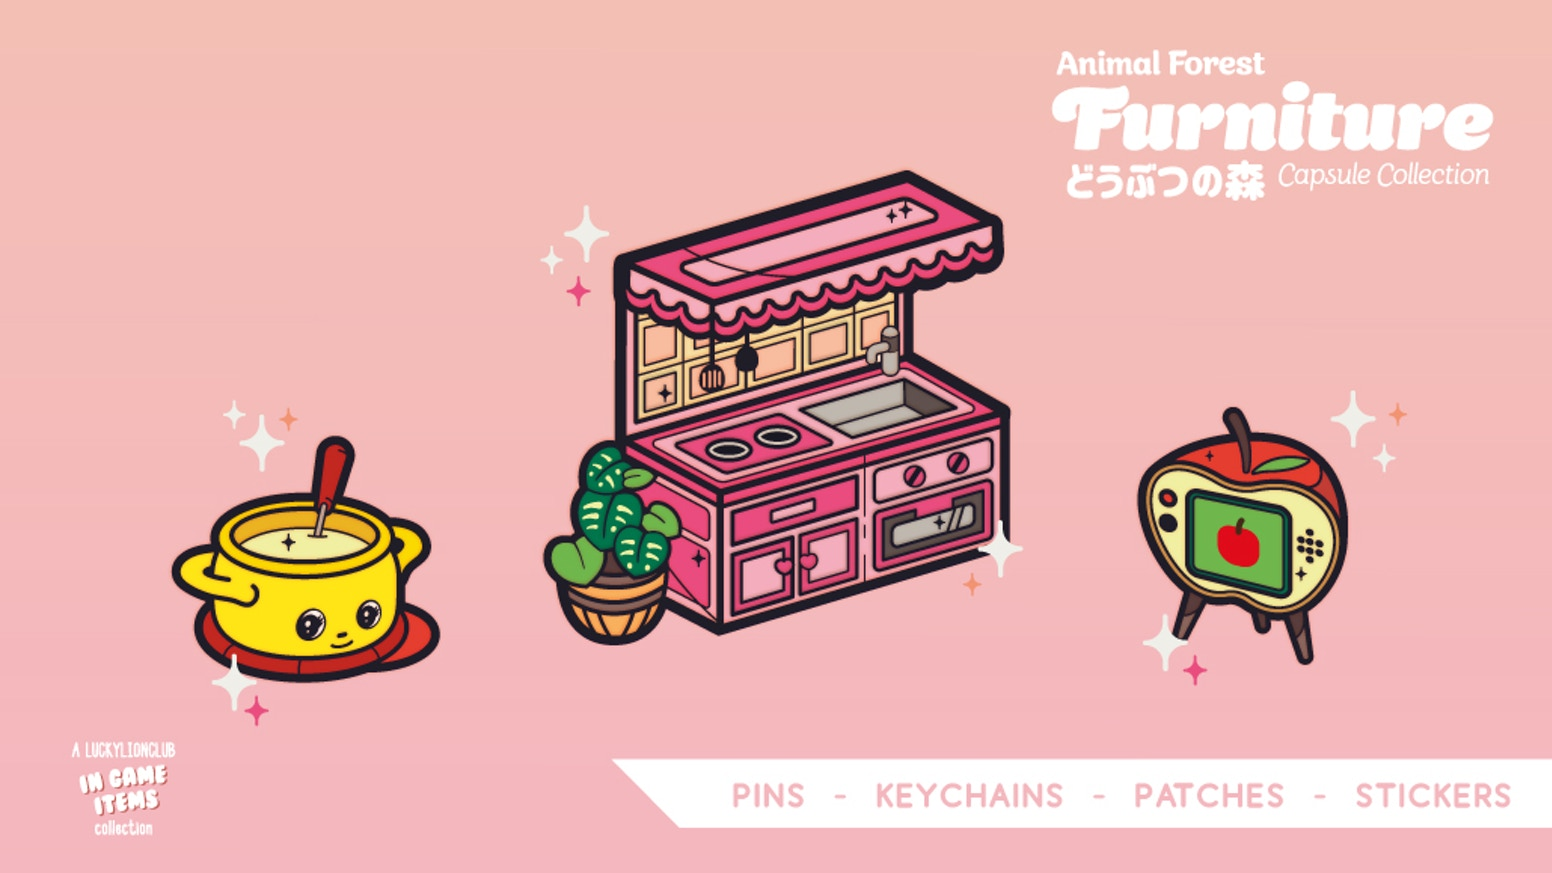 Cute Animal Forest furniture and accessories. Cue the anime gaming nostalgia! includes pins, keychains, patches and freebie stickers.